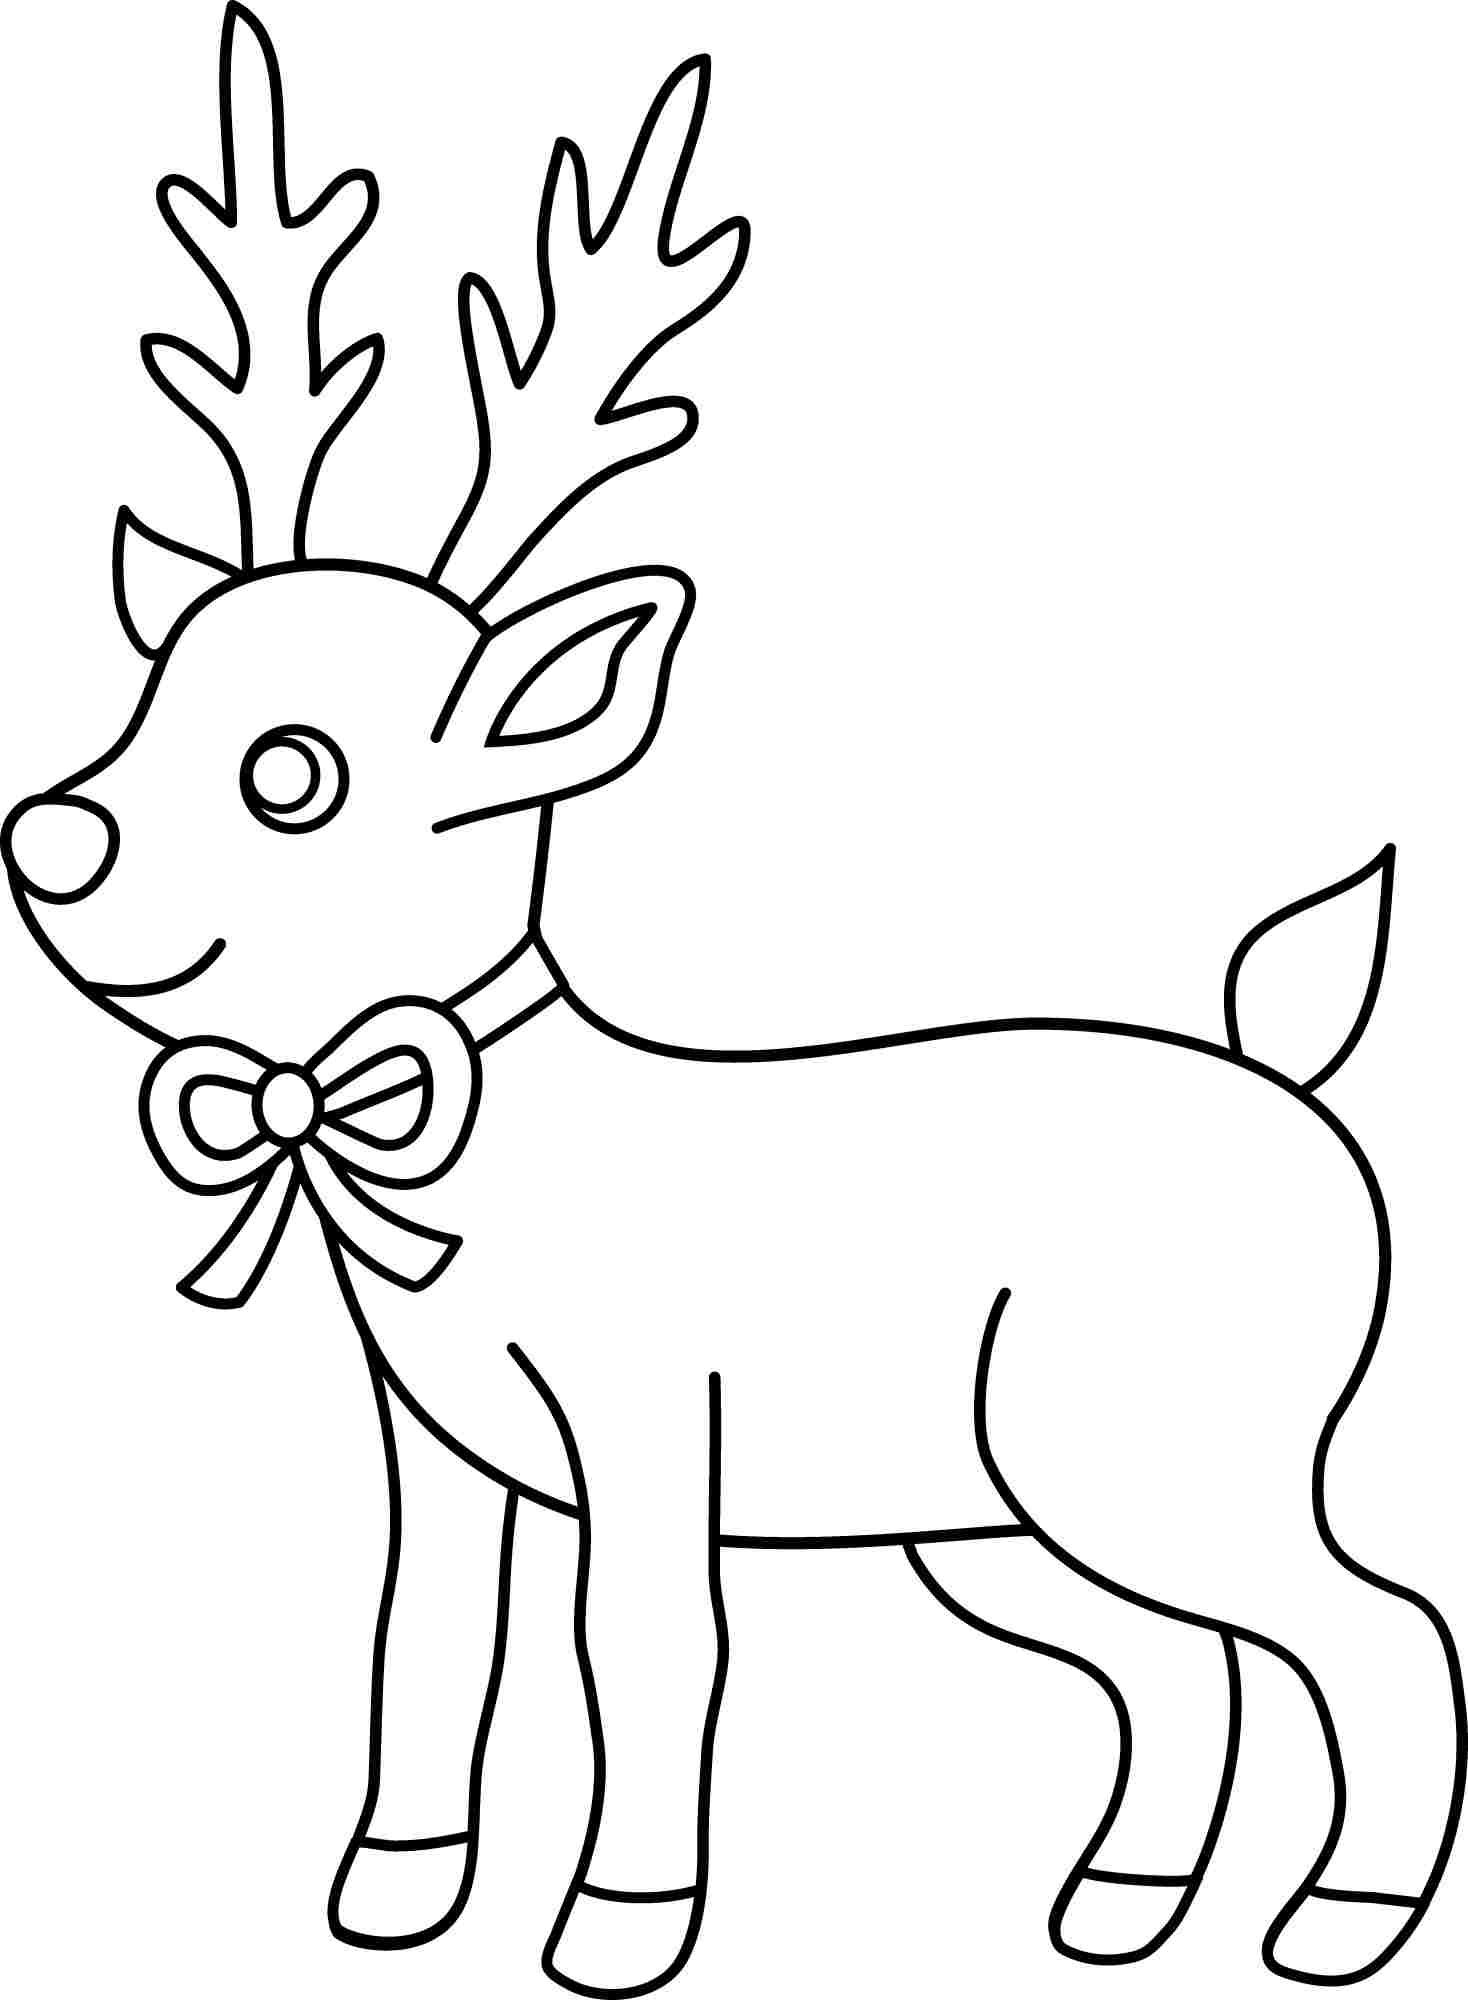 Christmas Coloring Pages For Kids Has Baby Jesus Ornaments Id Gambar Anak